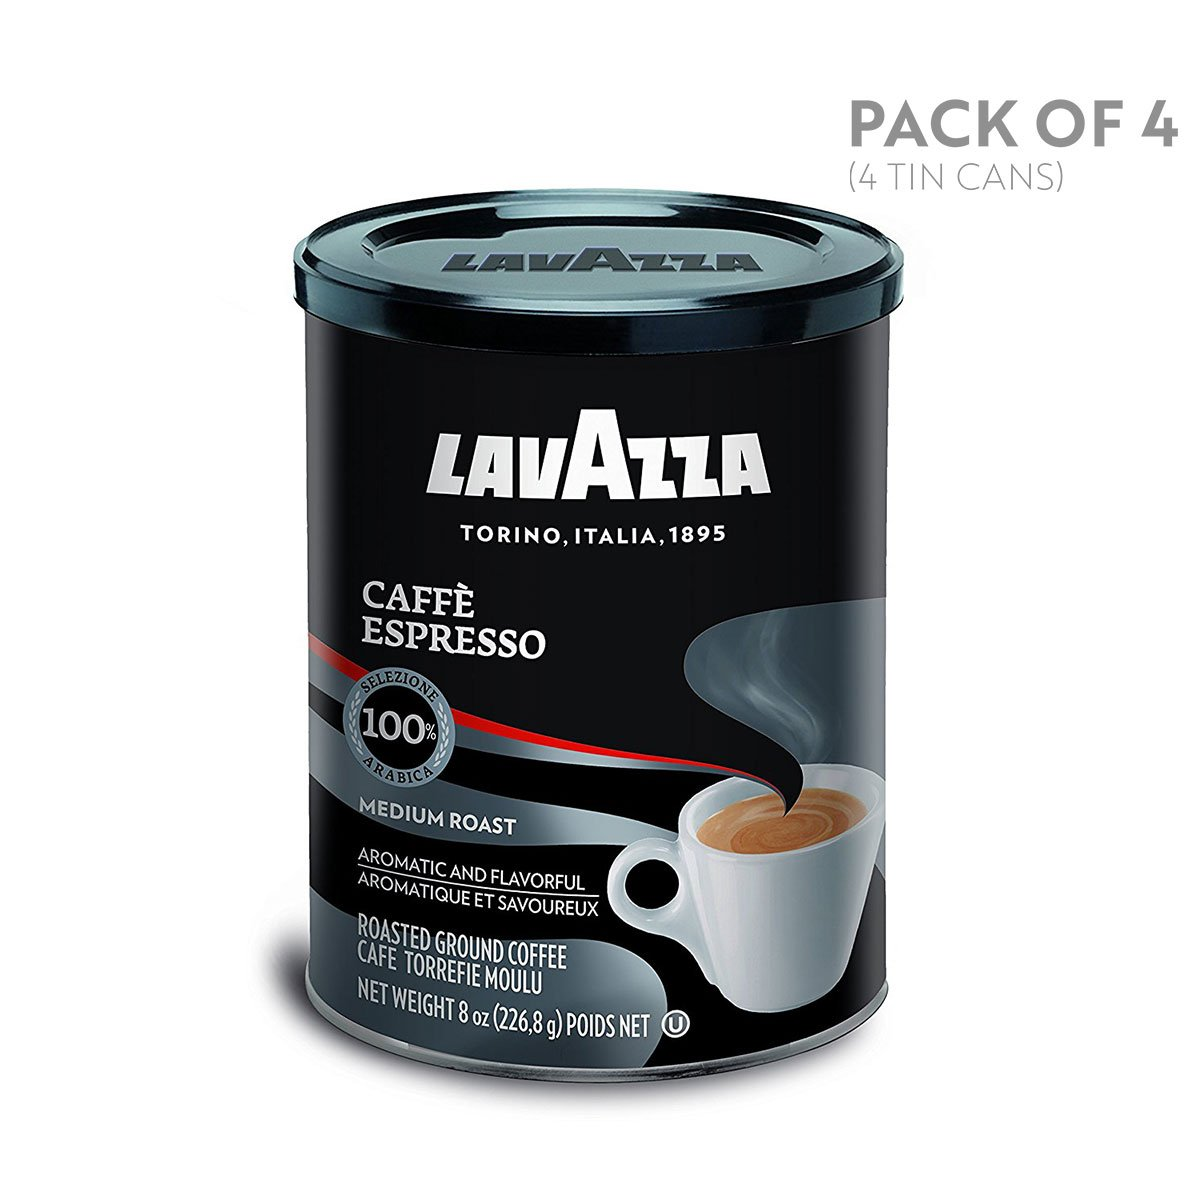 Lavazza Caffe Espresso Ground Coffee Blend, Medium Roast, 8-Ounce Cans,Pack of 4 by Lavazza